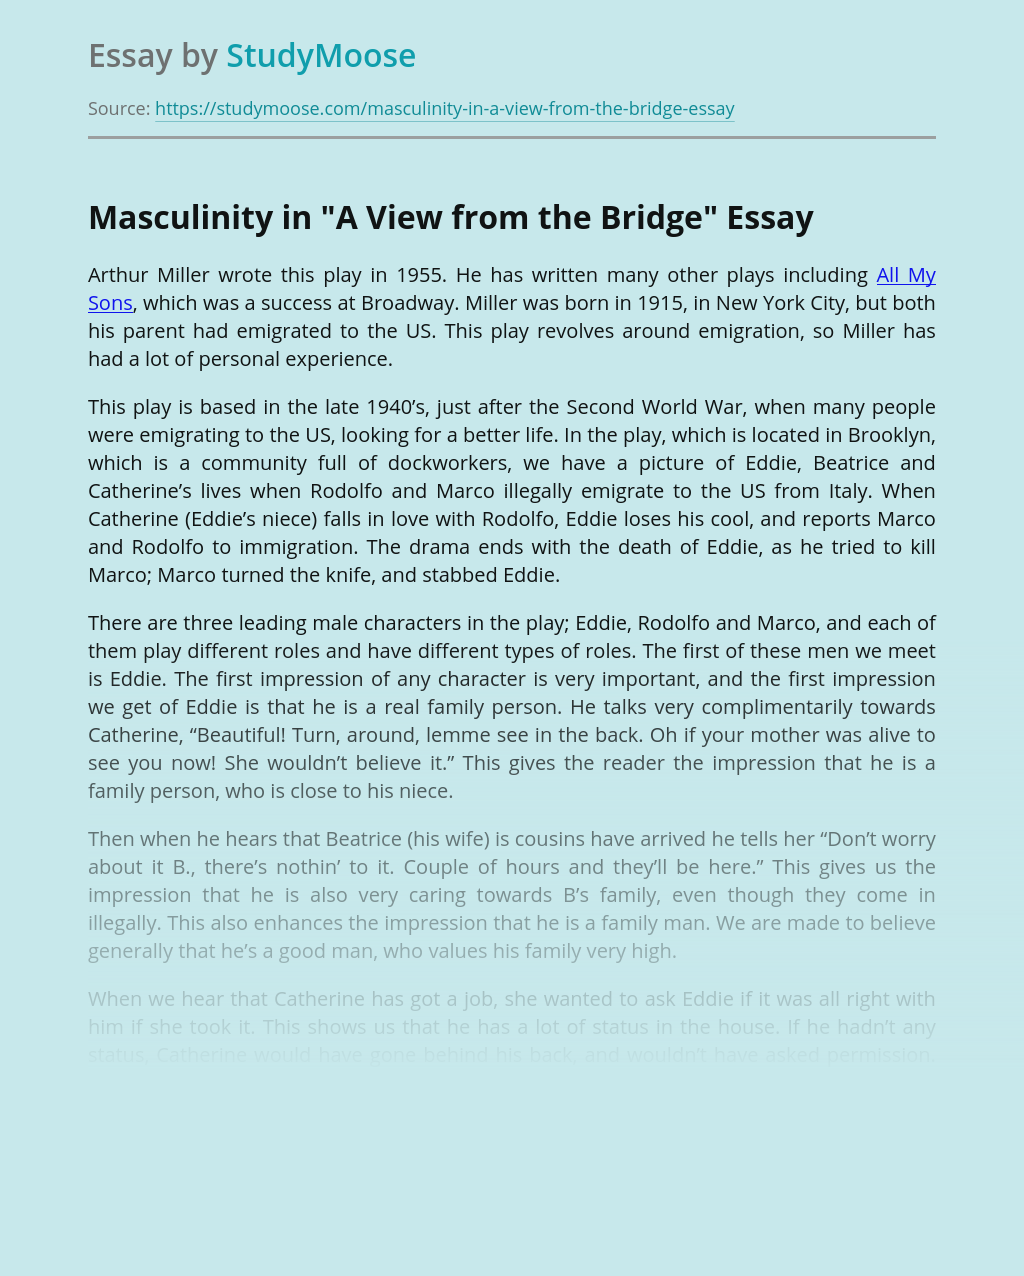 Masculinity in A View from the Bridge Play